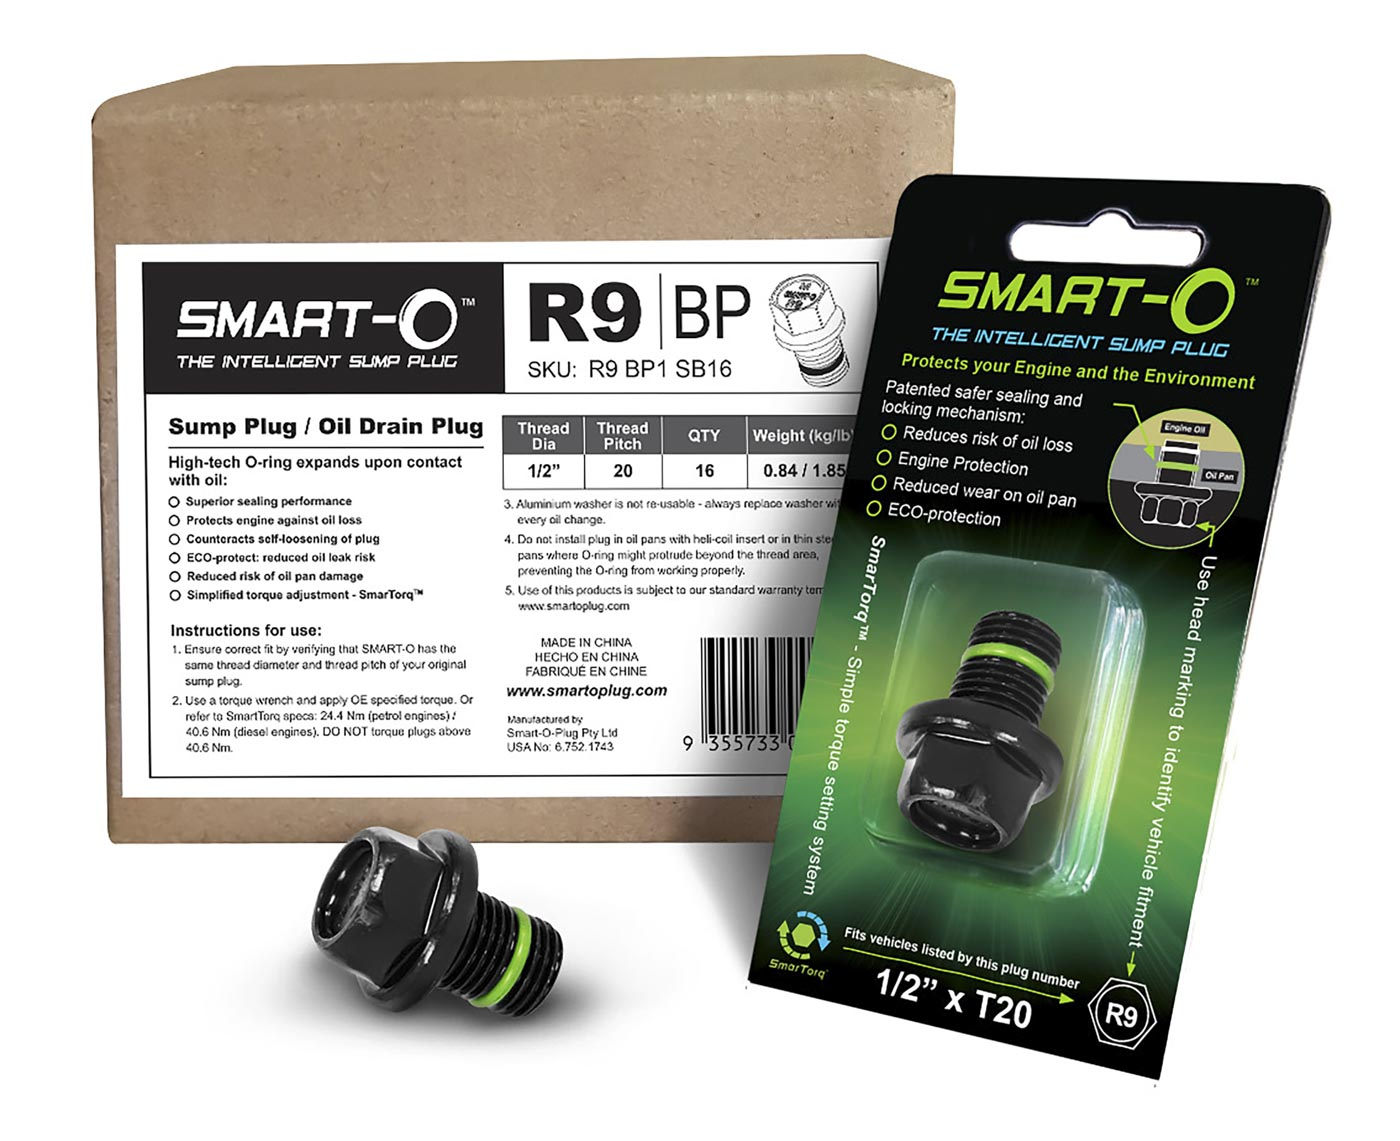 SMART-O Replenishment Box of 16 x R9BP1 Sump Plugs